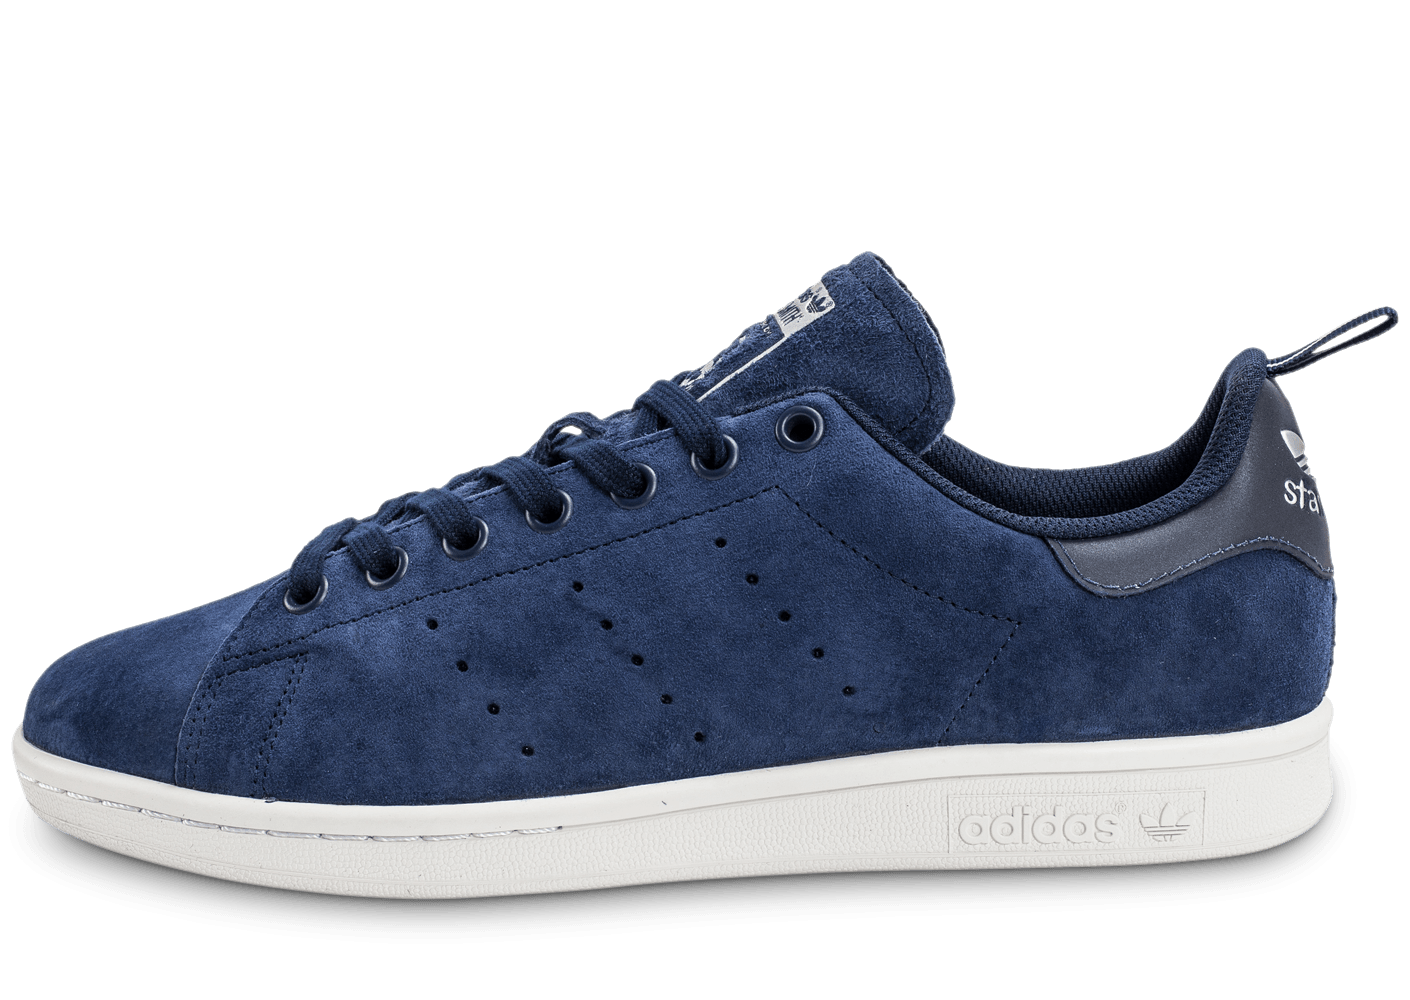 soldes adidas stan smith suede bleu marine chaussures homme chausport. Black Bedroom Furniture Sets. Home Design Ideas